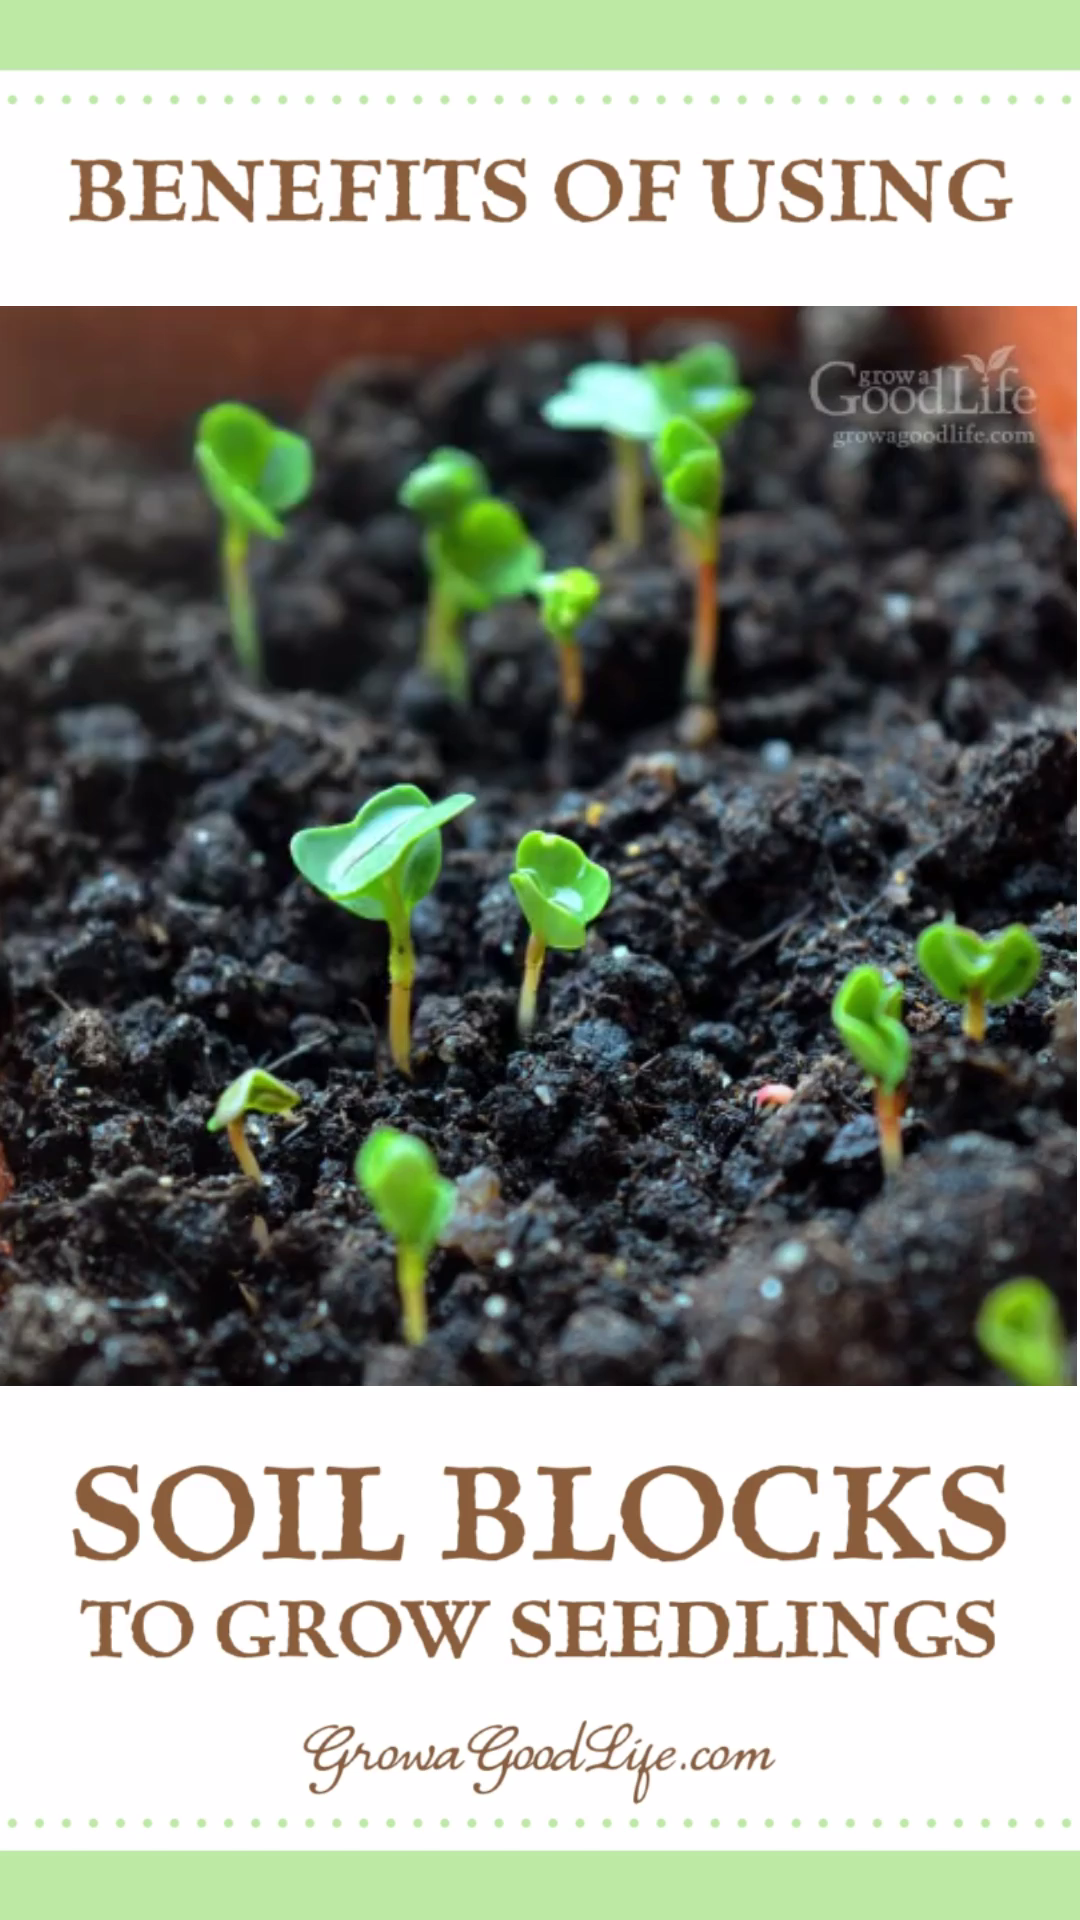 Soil Blocks to Grow Seedlings is part of Container gardening vegetables, Seedlings, Growing vegetables, Organic raised garden beds, Growing seedlings, Seedlings indoors - Seedlings grown in soil blocks are easy to transplant with no damage to the roots allowing the seedlings establish quickly into the surrounding soil